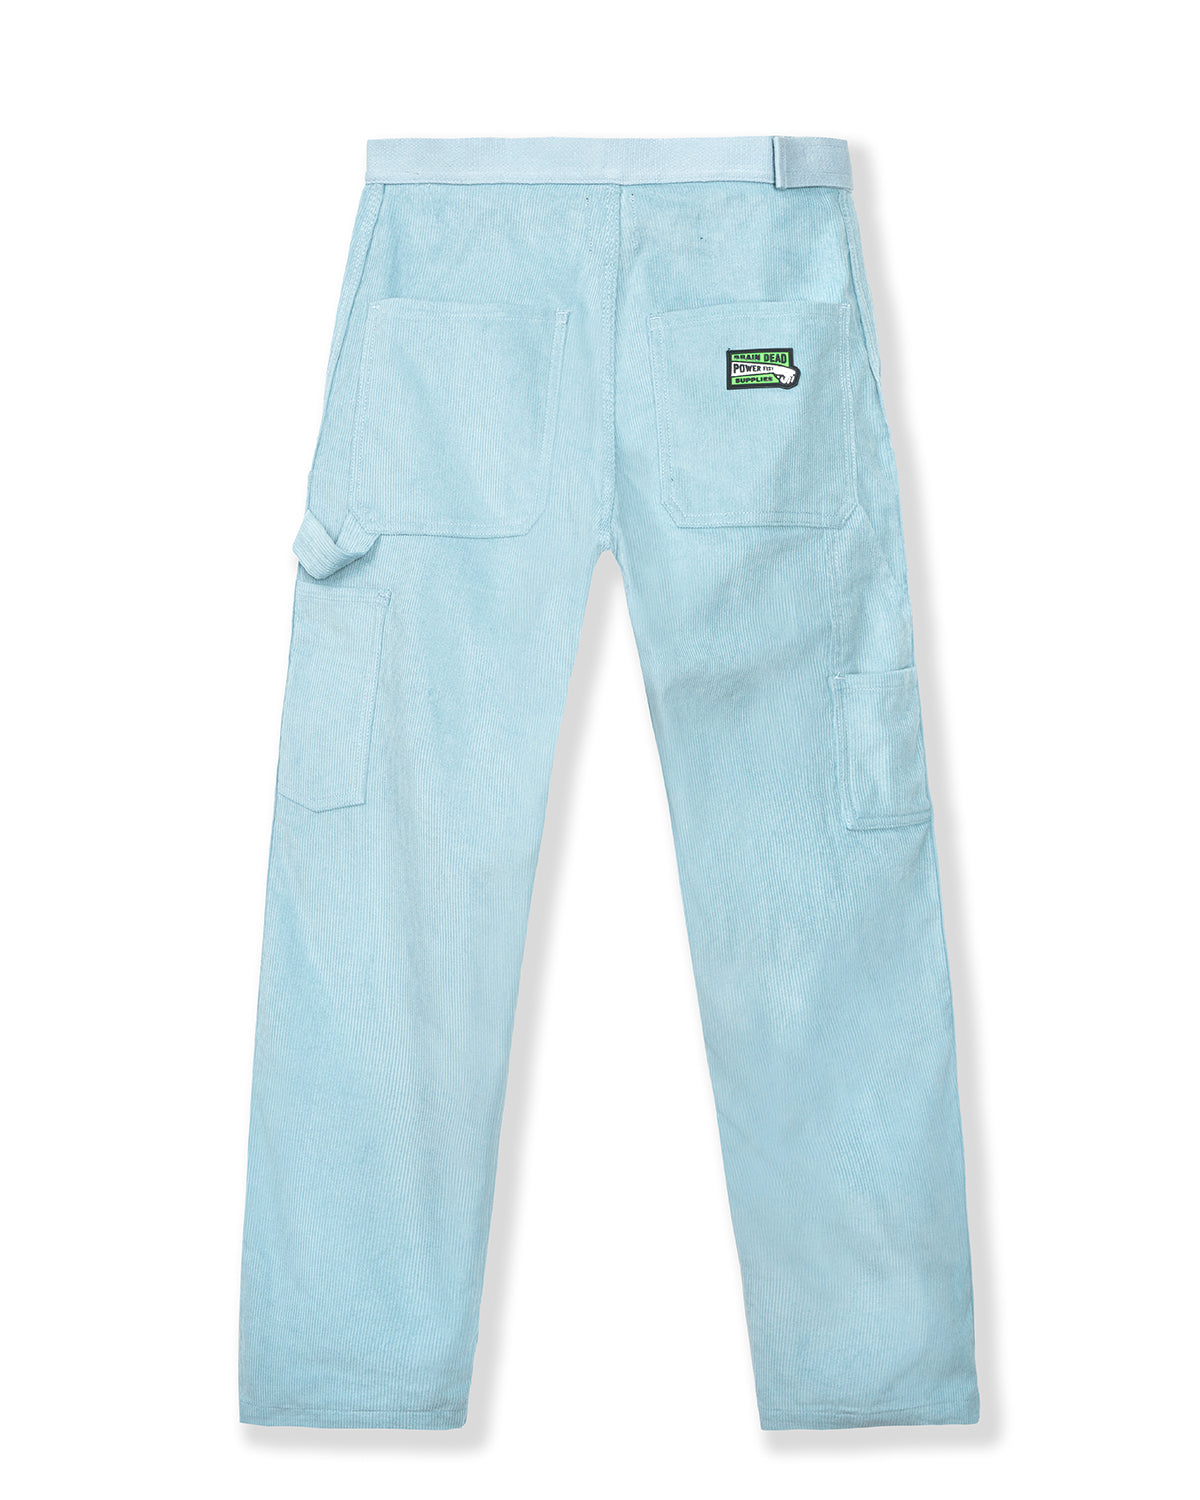 Hard/Software Velcro Corduroy Carpenter Pant - Light Blue